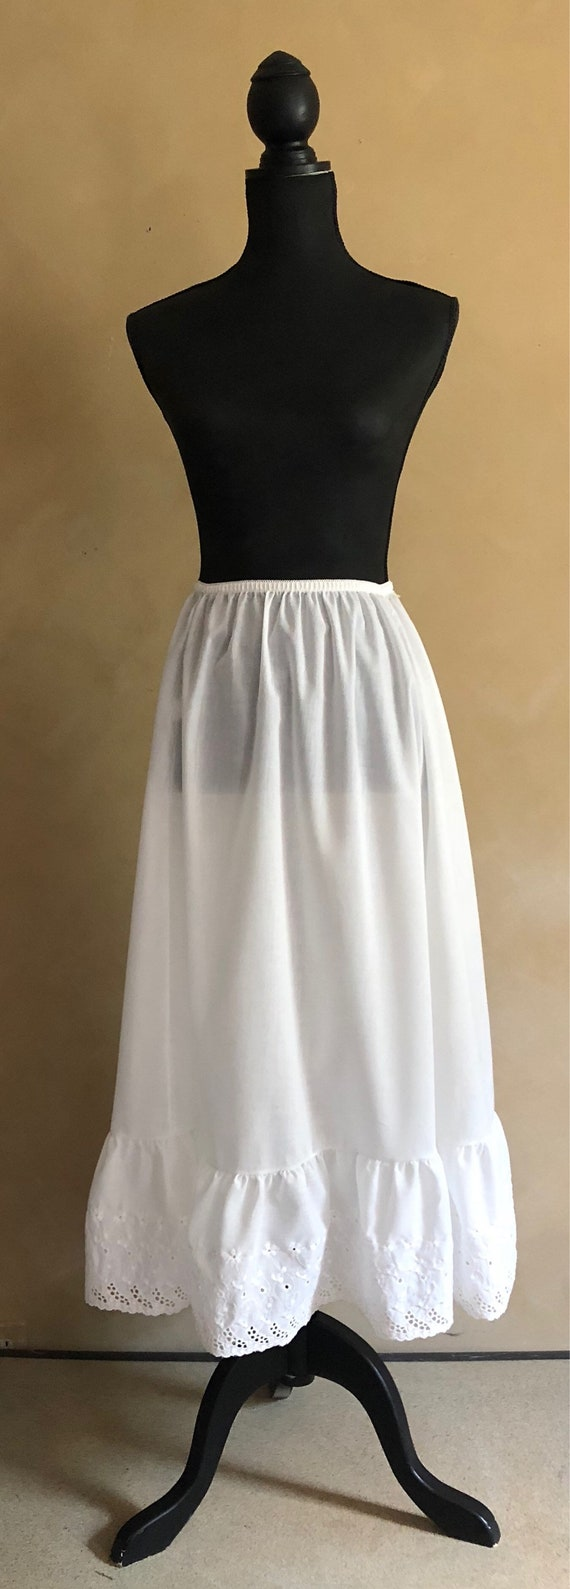 White Cotton Skirt Vintage 70's Petticoat